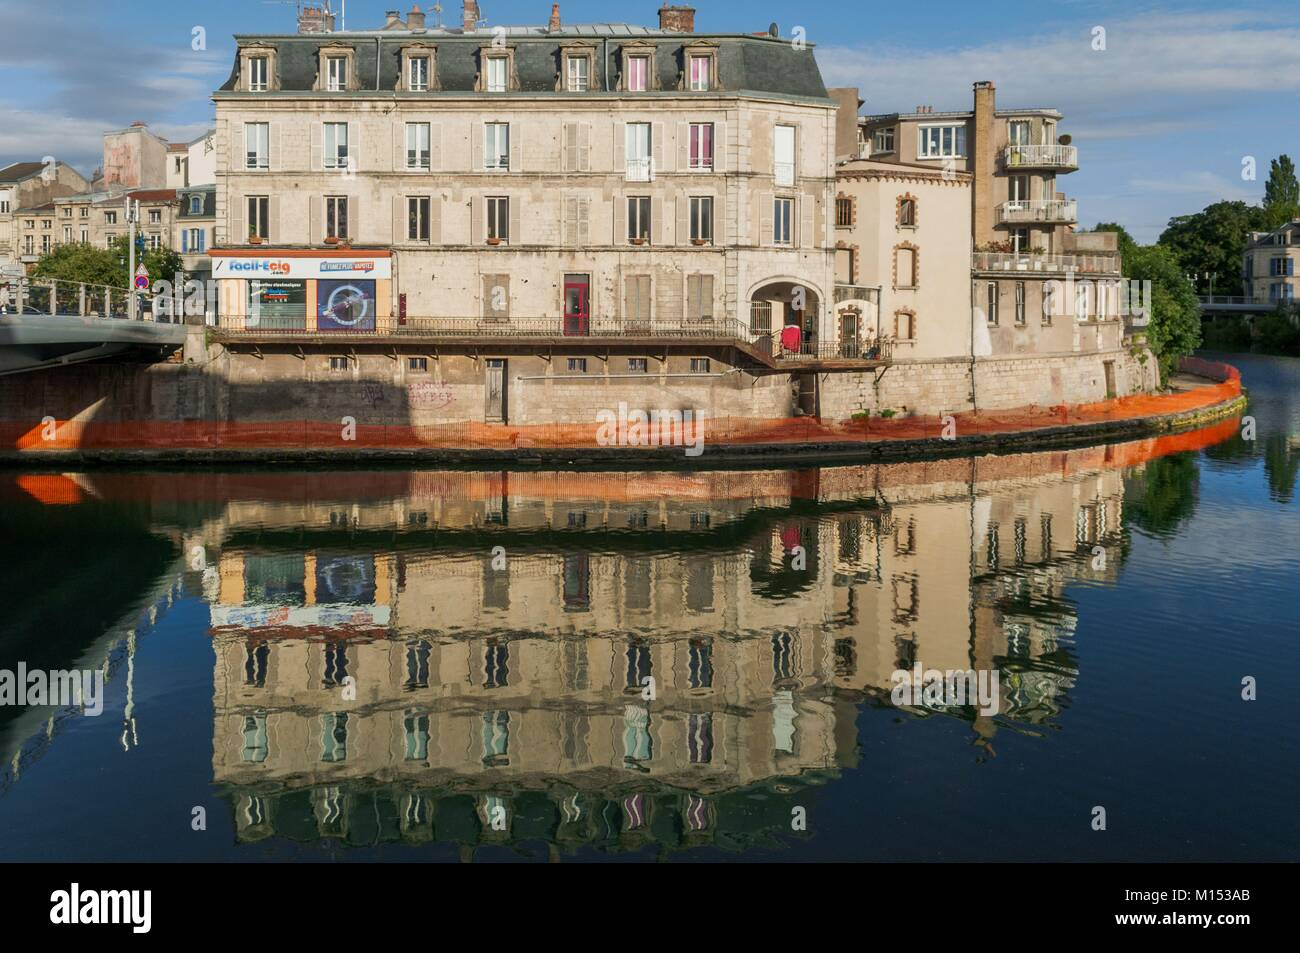 France, Meuse, Verdun, River Saint Vanne and Canal de l'Est to the affluence of the Meuse - Stock Image